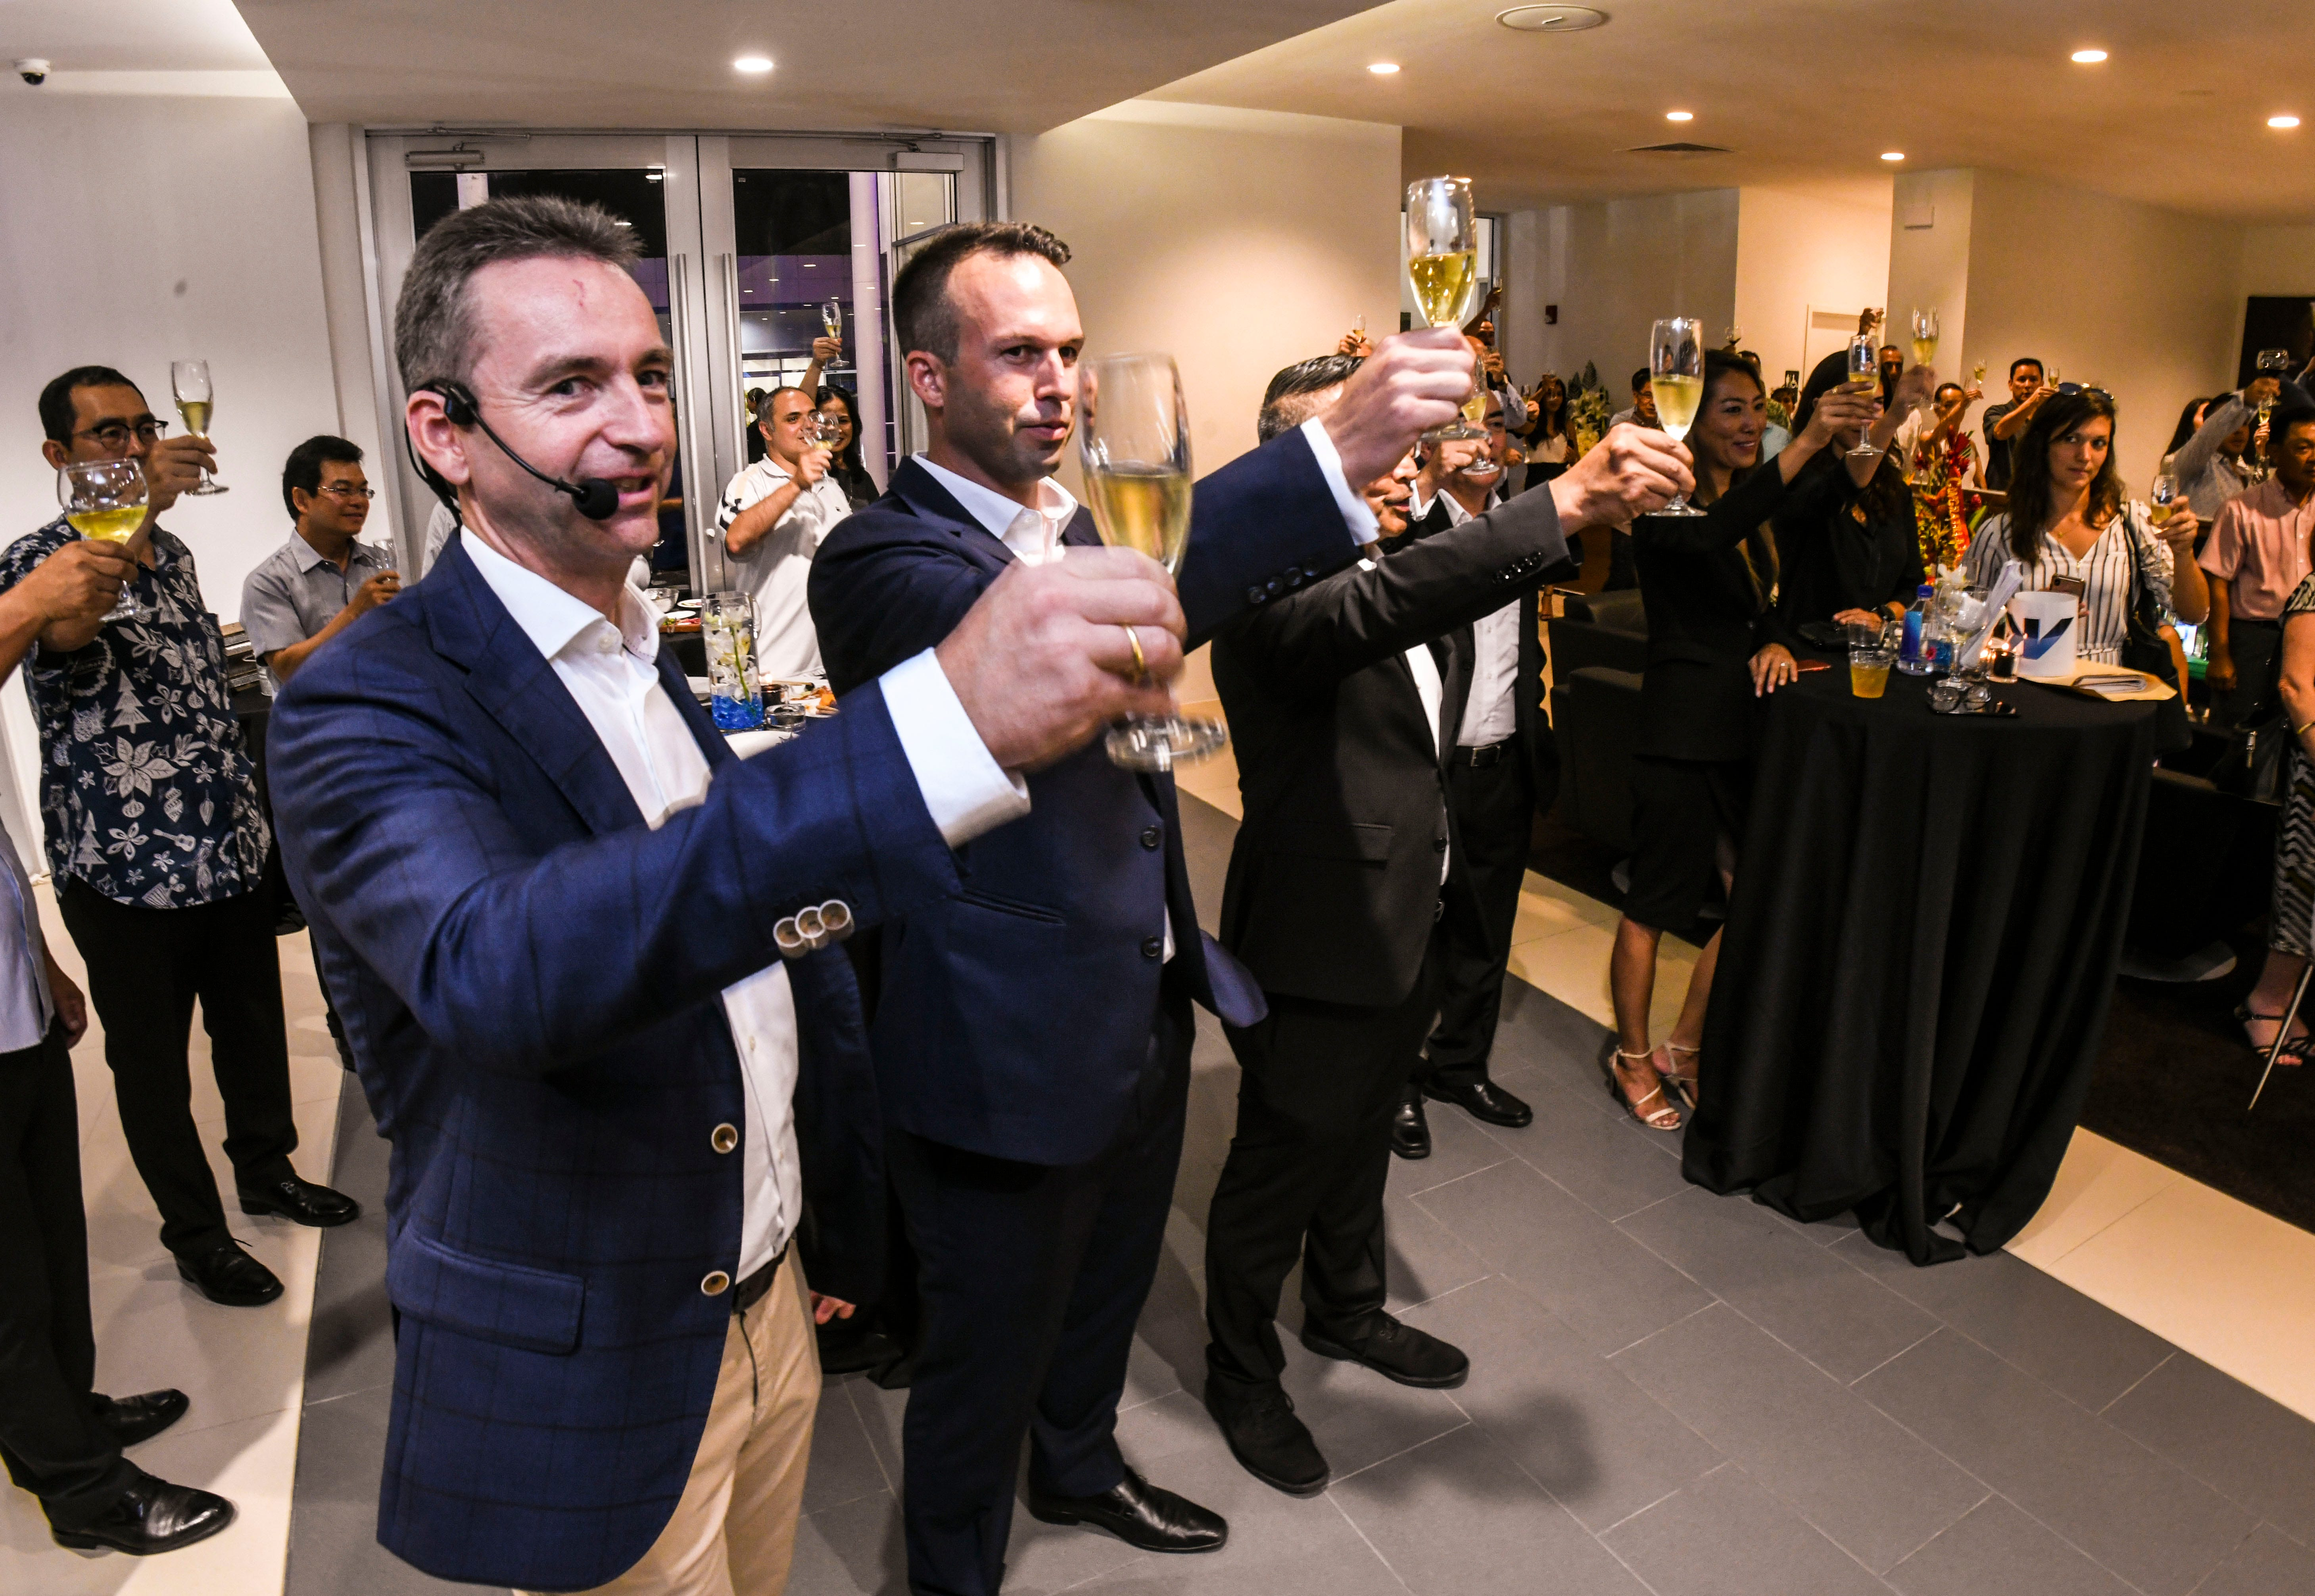 Christopher Wehner, front, BMW Group Asia managing director and Alex Hammett, Atkins Kroll, Inc. president, lead guests and employees in a champagne toast to celebrate the opening of the dealership's new BMW showroom in Tamuning on Wednesday, May 29, 2019.